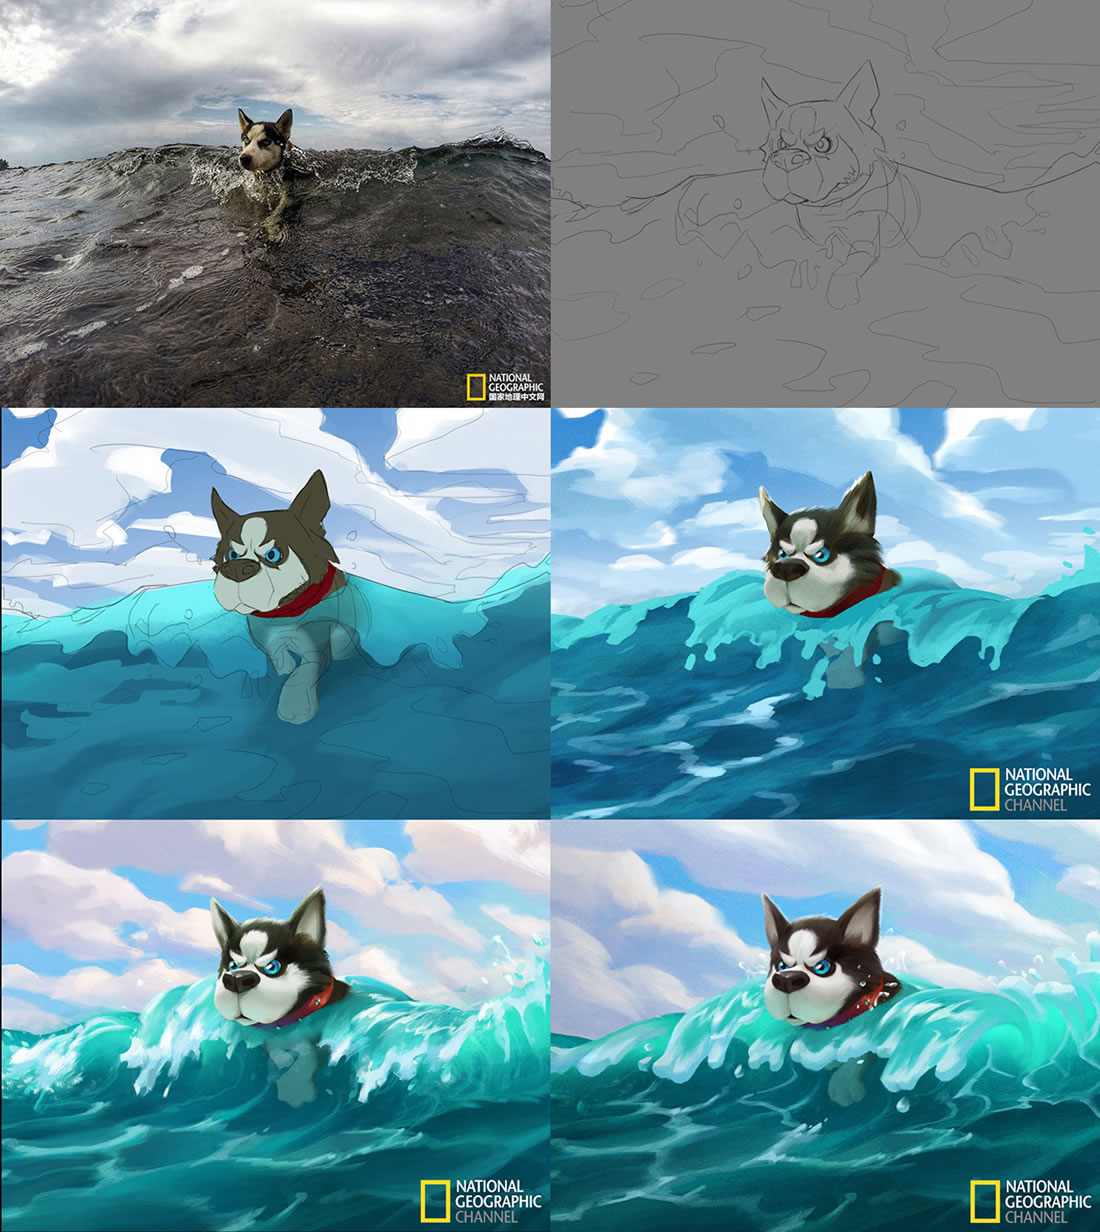 Magnifiques stylisations en digital painting de photos de National Geographic